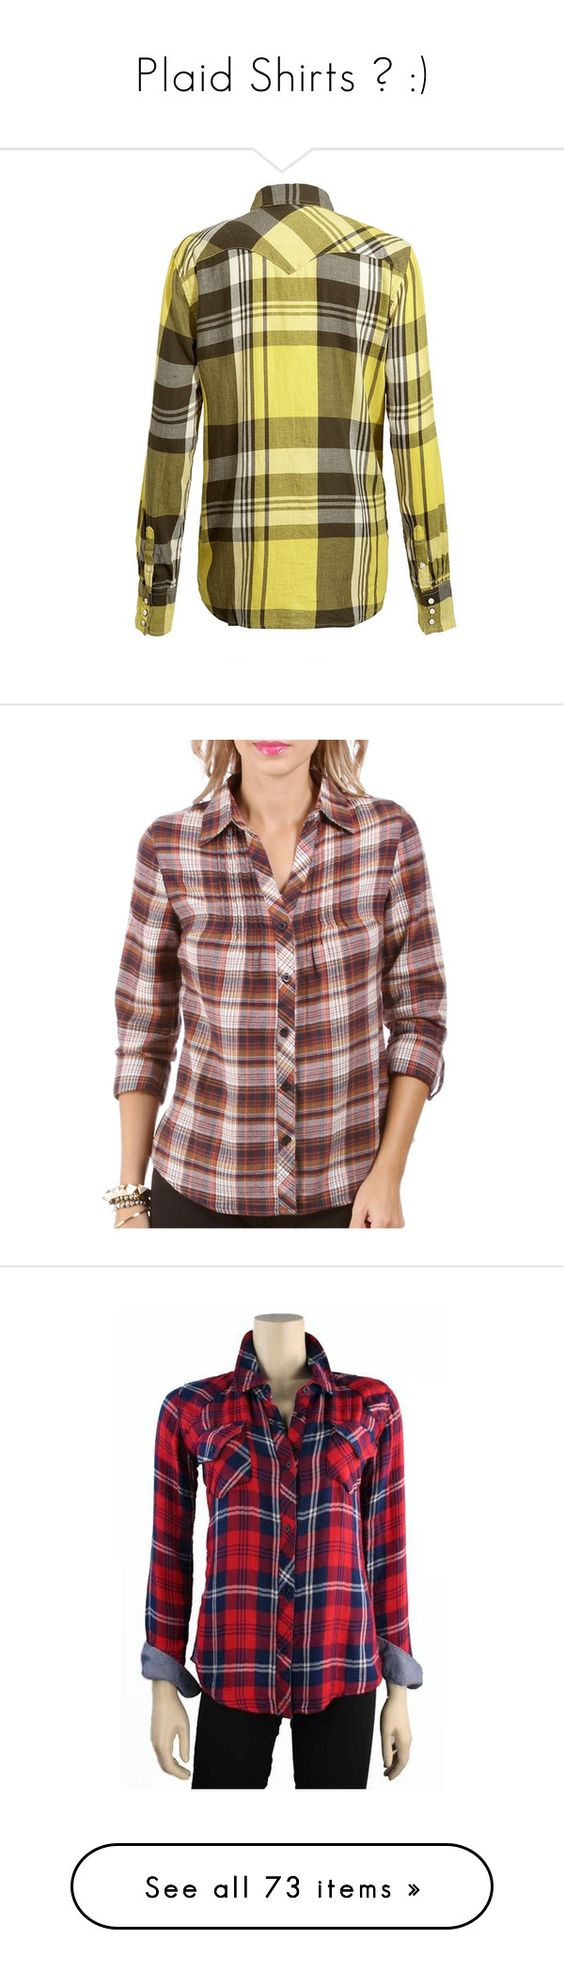 """""""Plaid Shirts ♥ :)"""" by taltul123 ❤ liked on Polyvore featuring tops, cowboy shirt, brown shirt, cowgirl shirts, cotton plaid shirt, button shirts, blouses, cotton shirts, long sleeve tops and long sleeve cotton shirt"""